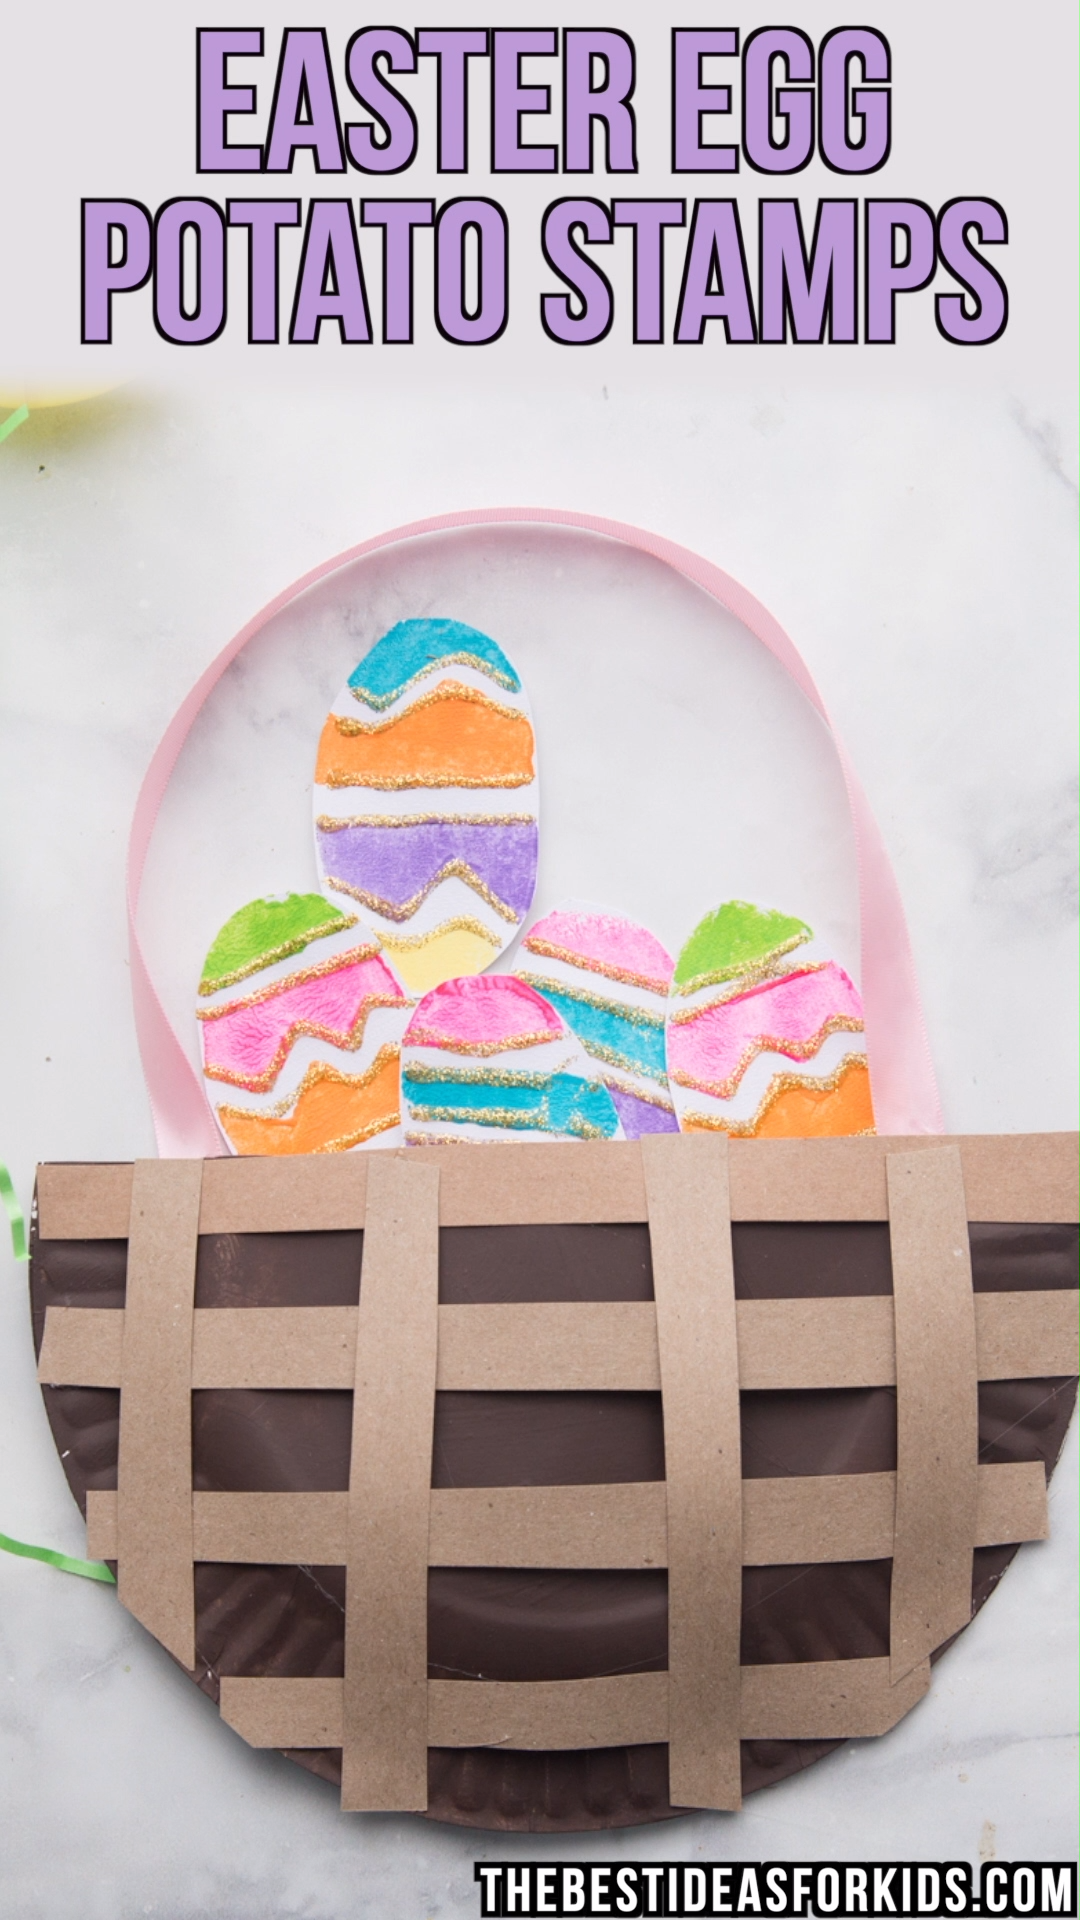 EASTER EGG POTATO STAMPS #craftsforkids